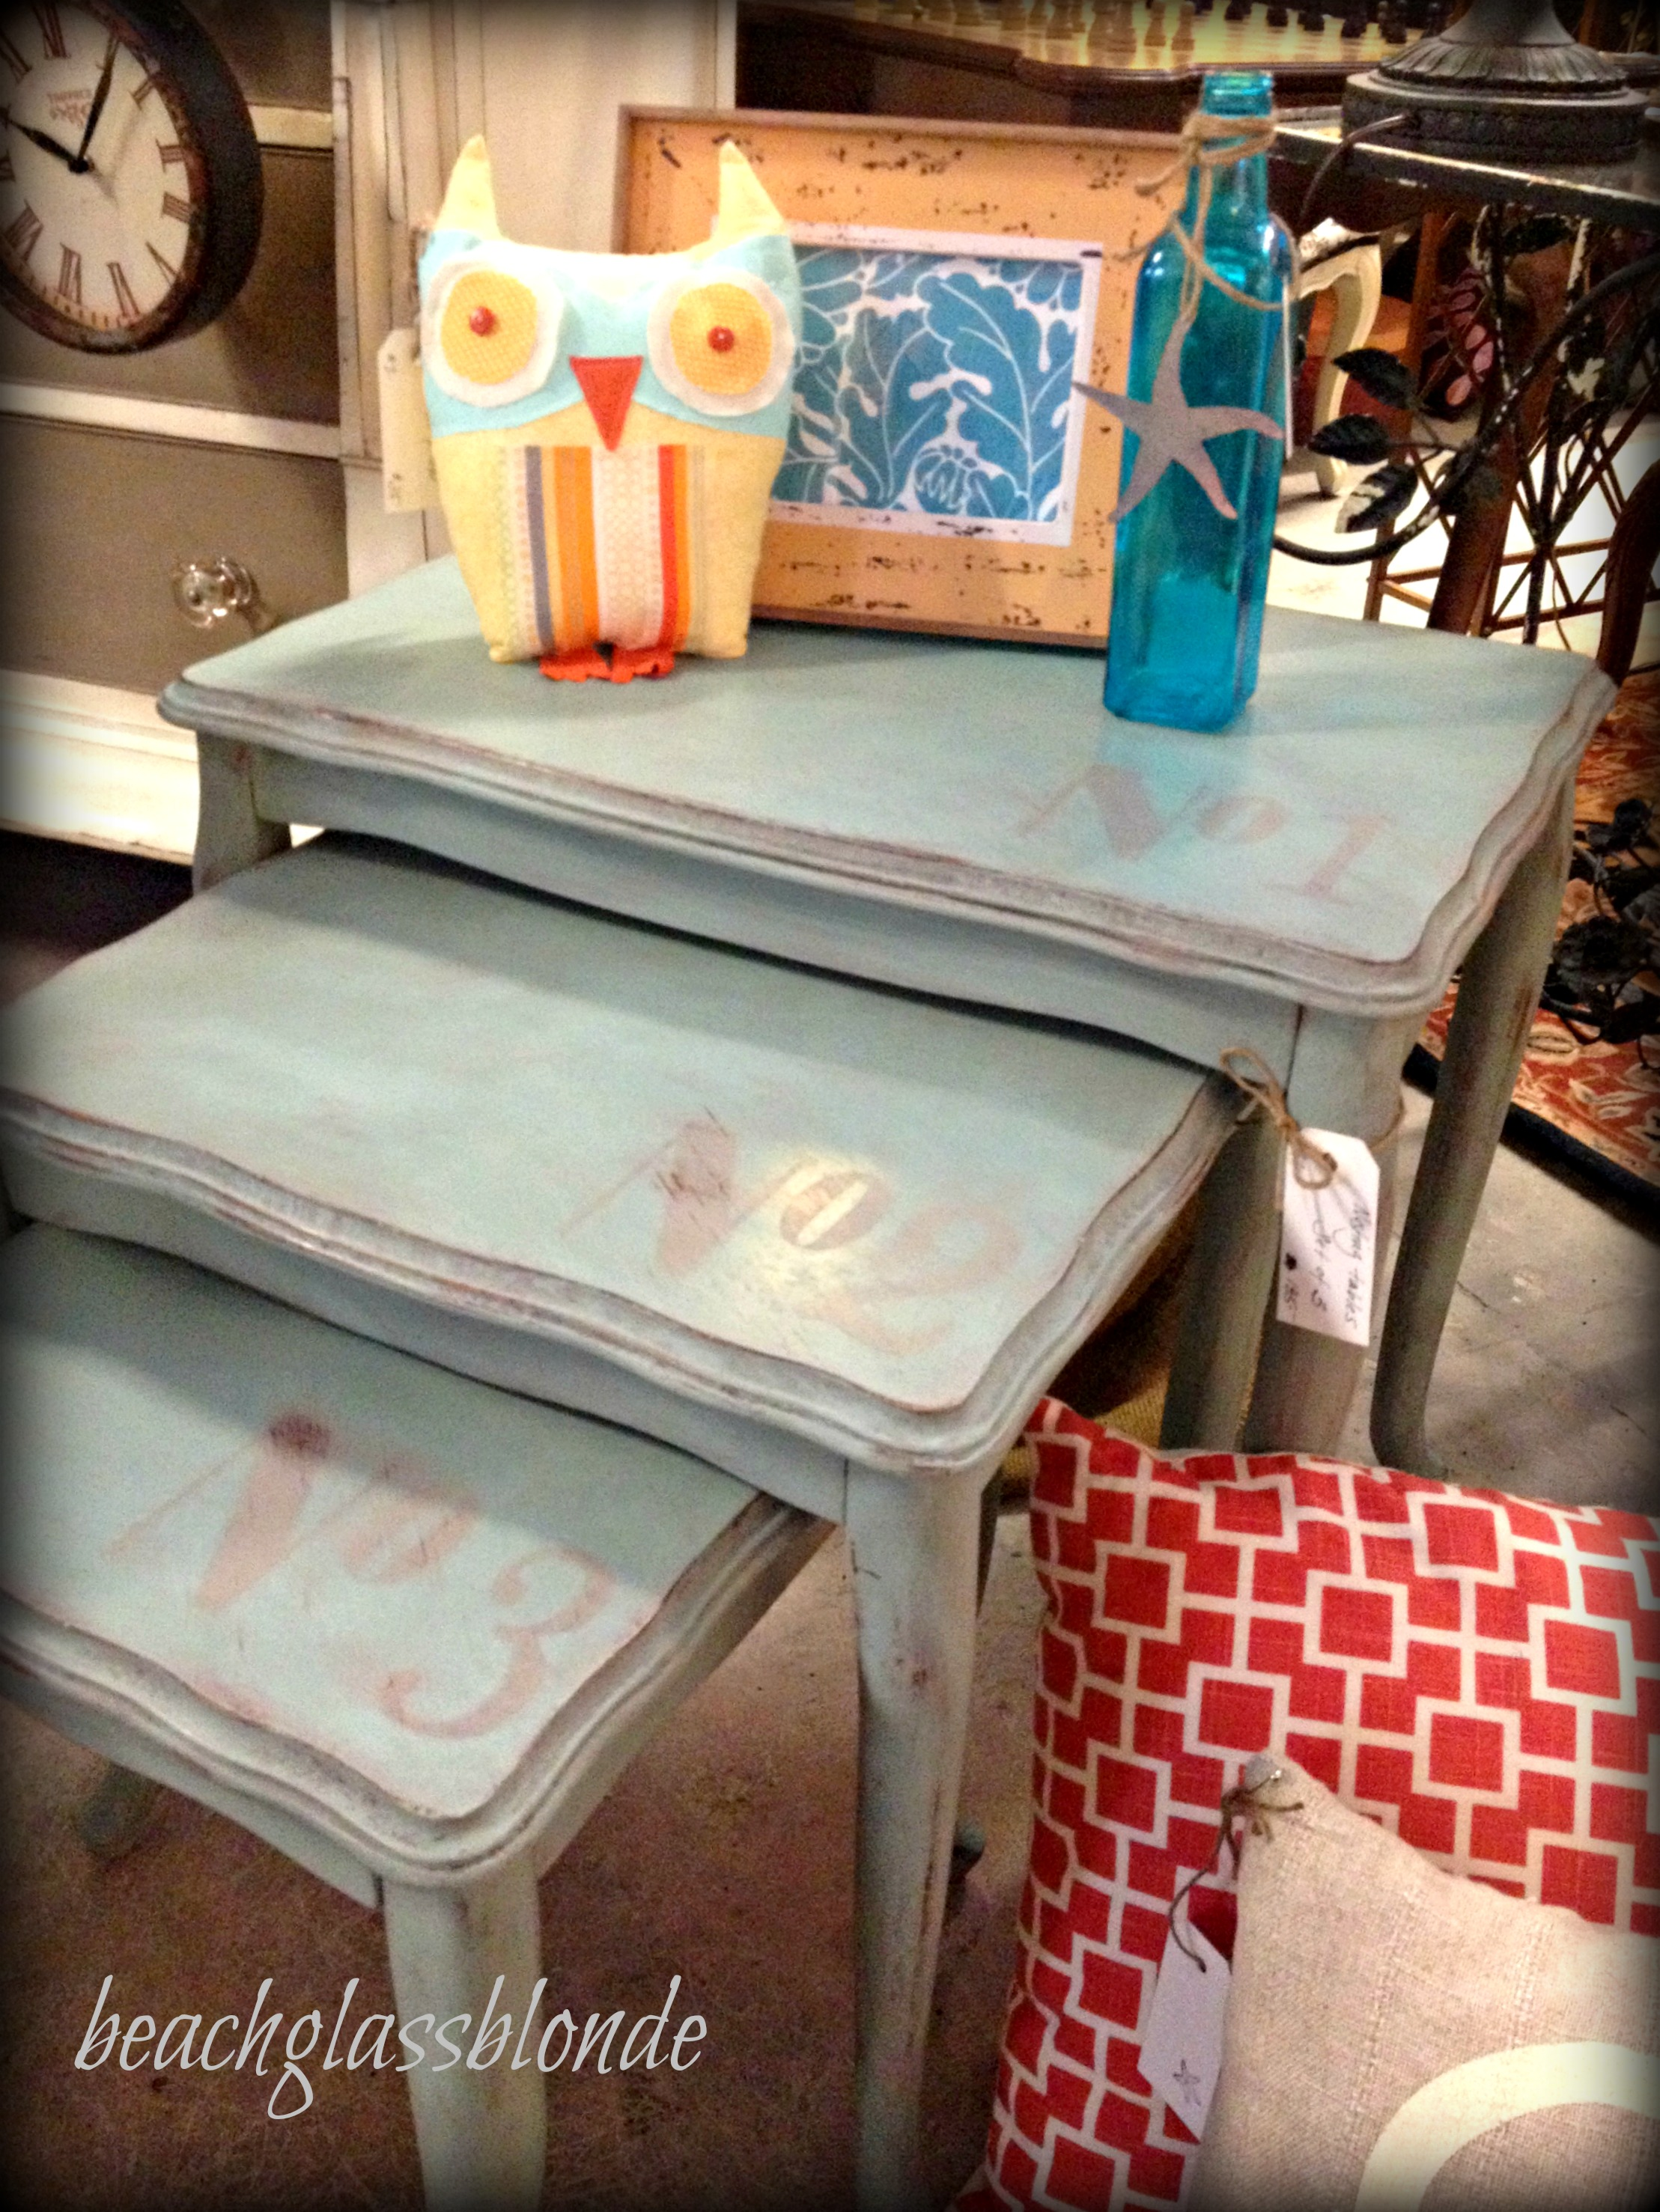 nesting tables in shop